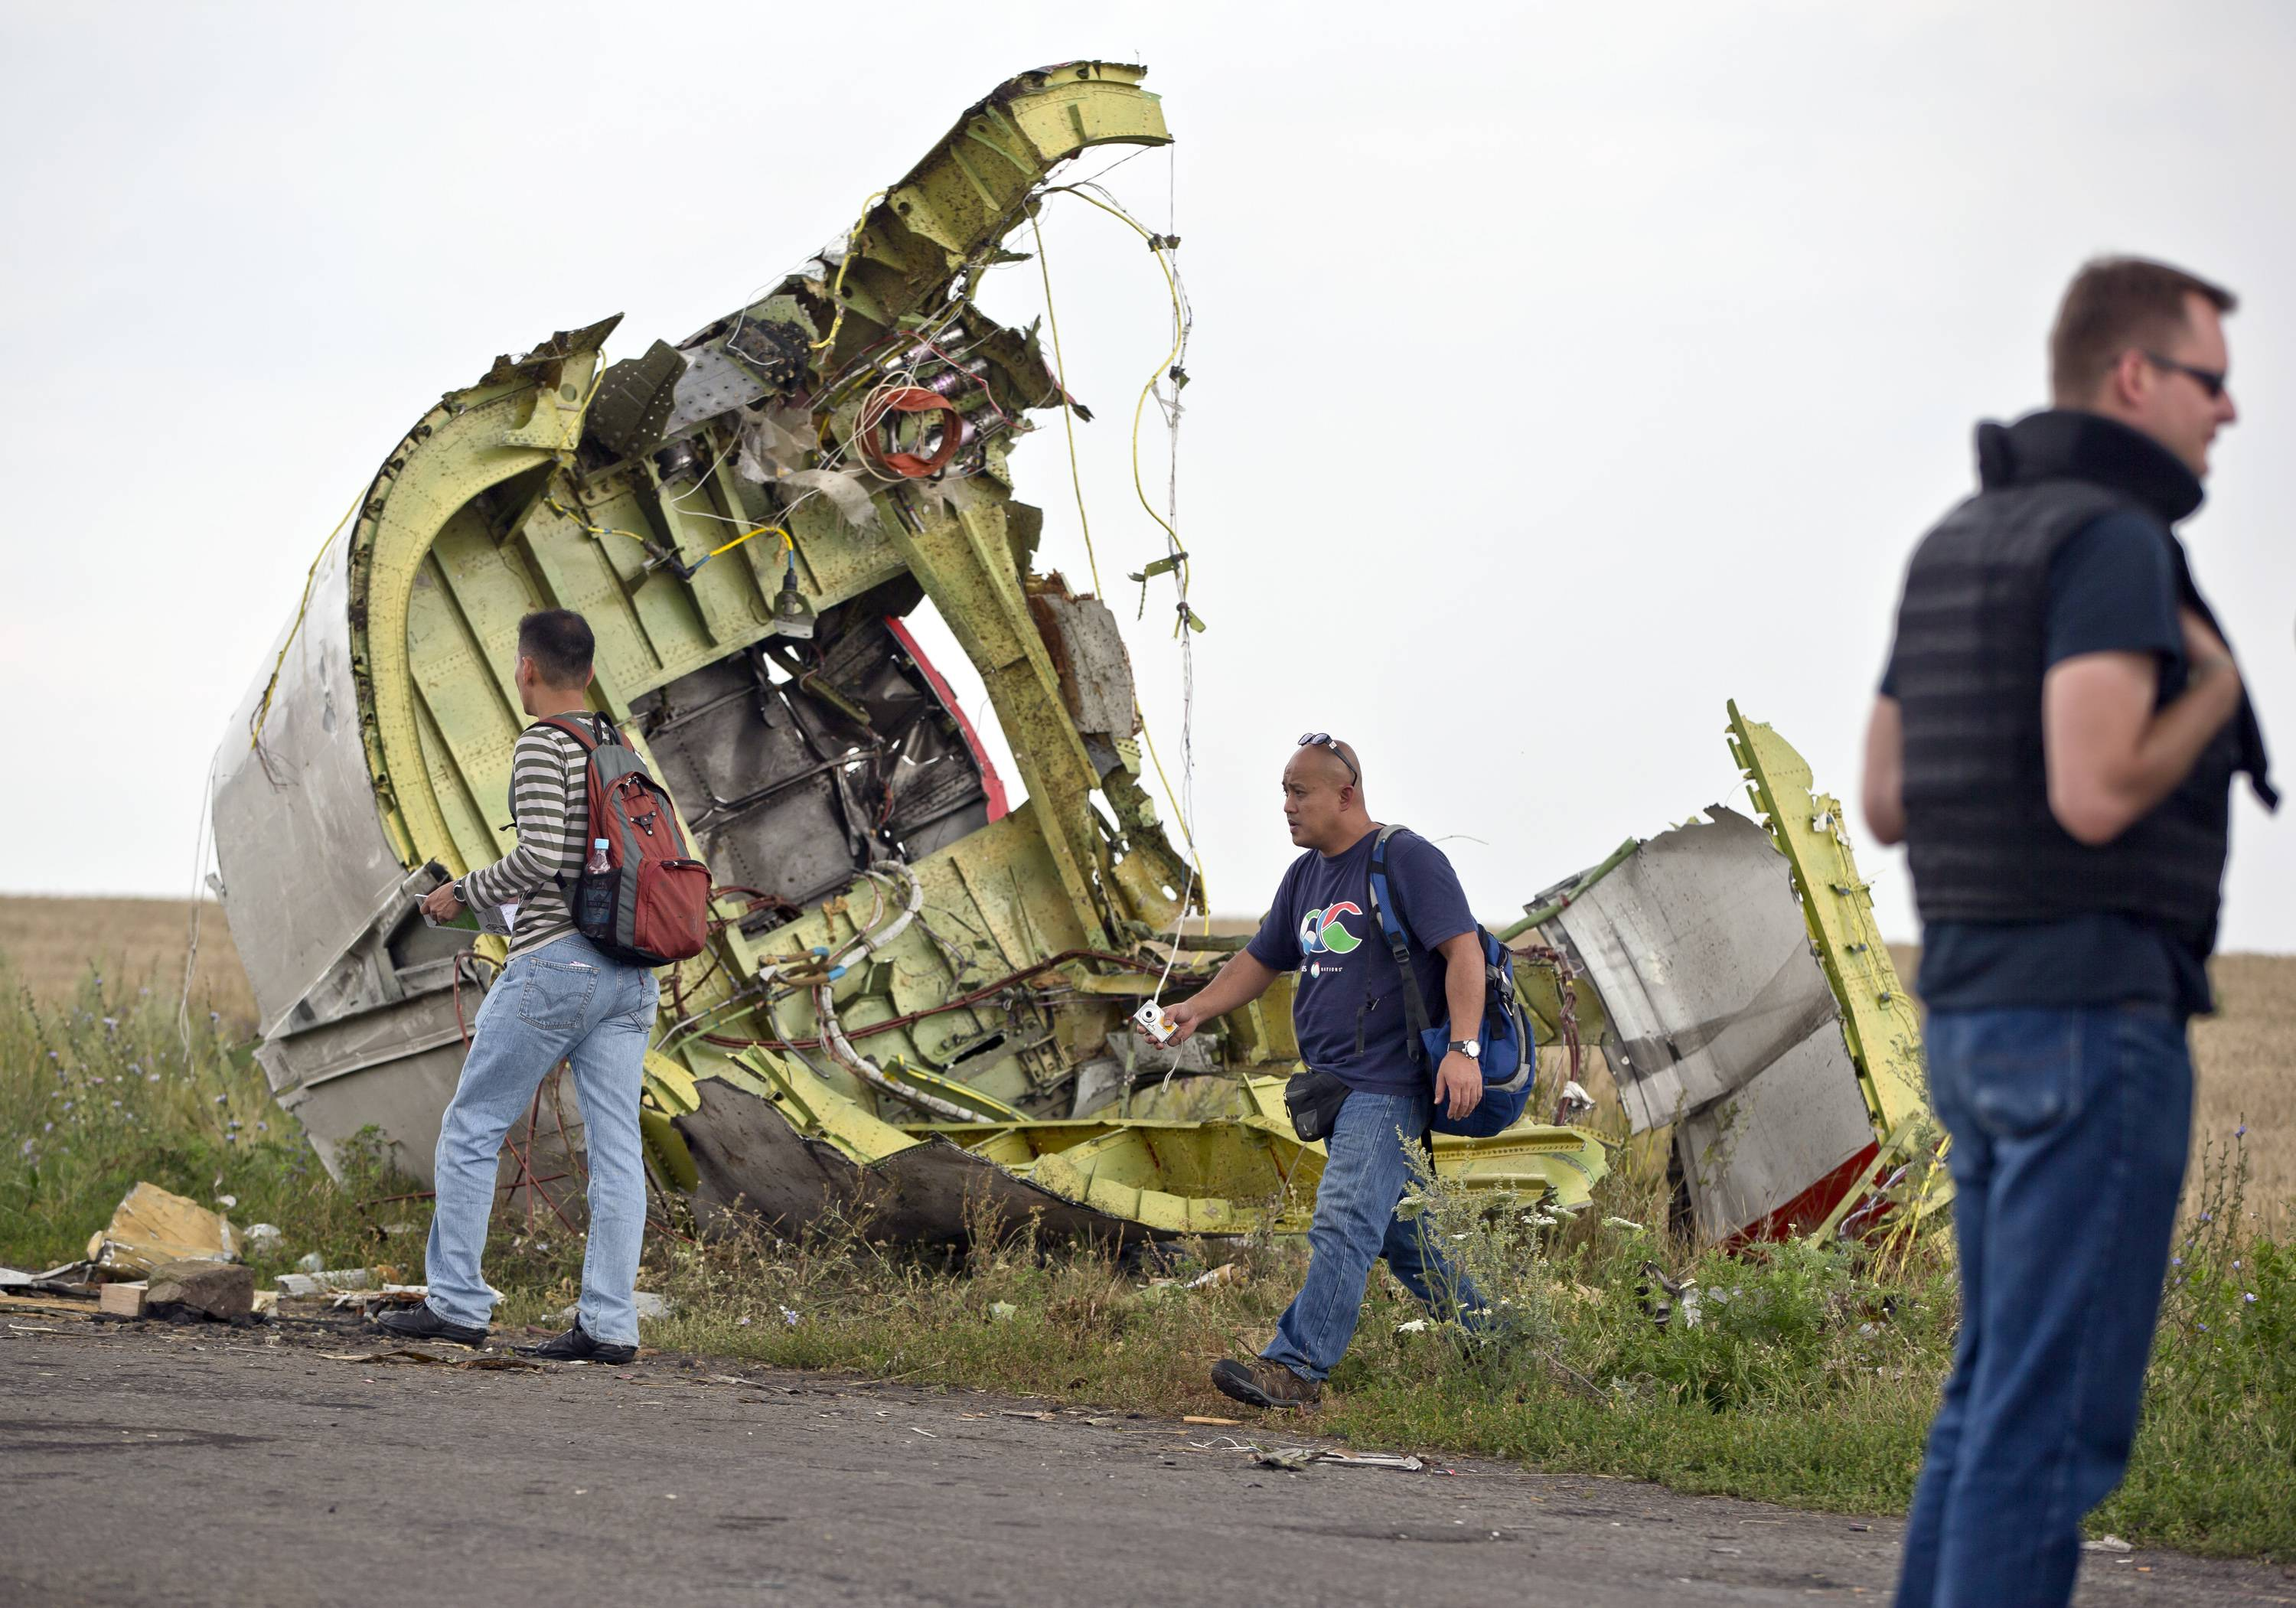 Malaysian air crash investigators walk by wreckage at the crash site of Malaysia Airlines Flight 17 near the village of Hrabove, eastern Ukraine last July. Families of passengers who were on the Malaysia Airlines plane shot down over Ukraine are starting to sort through the long process of gaining compensation for their loss.